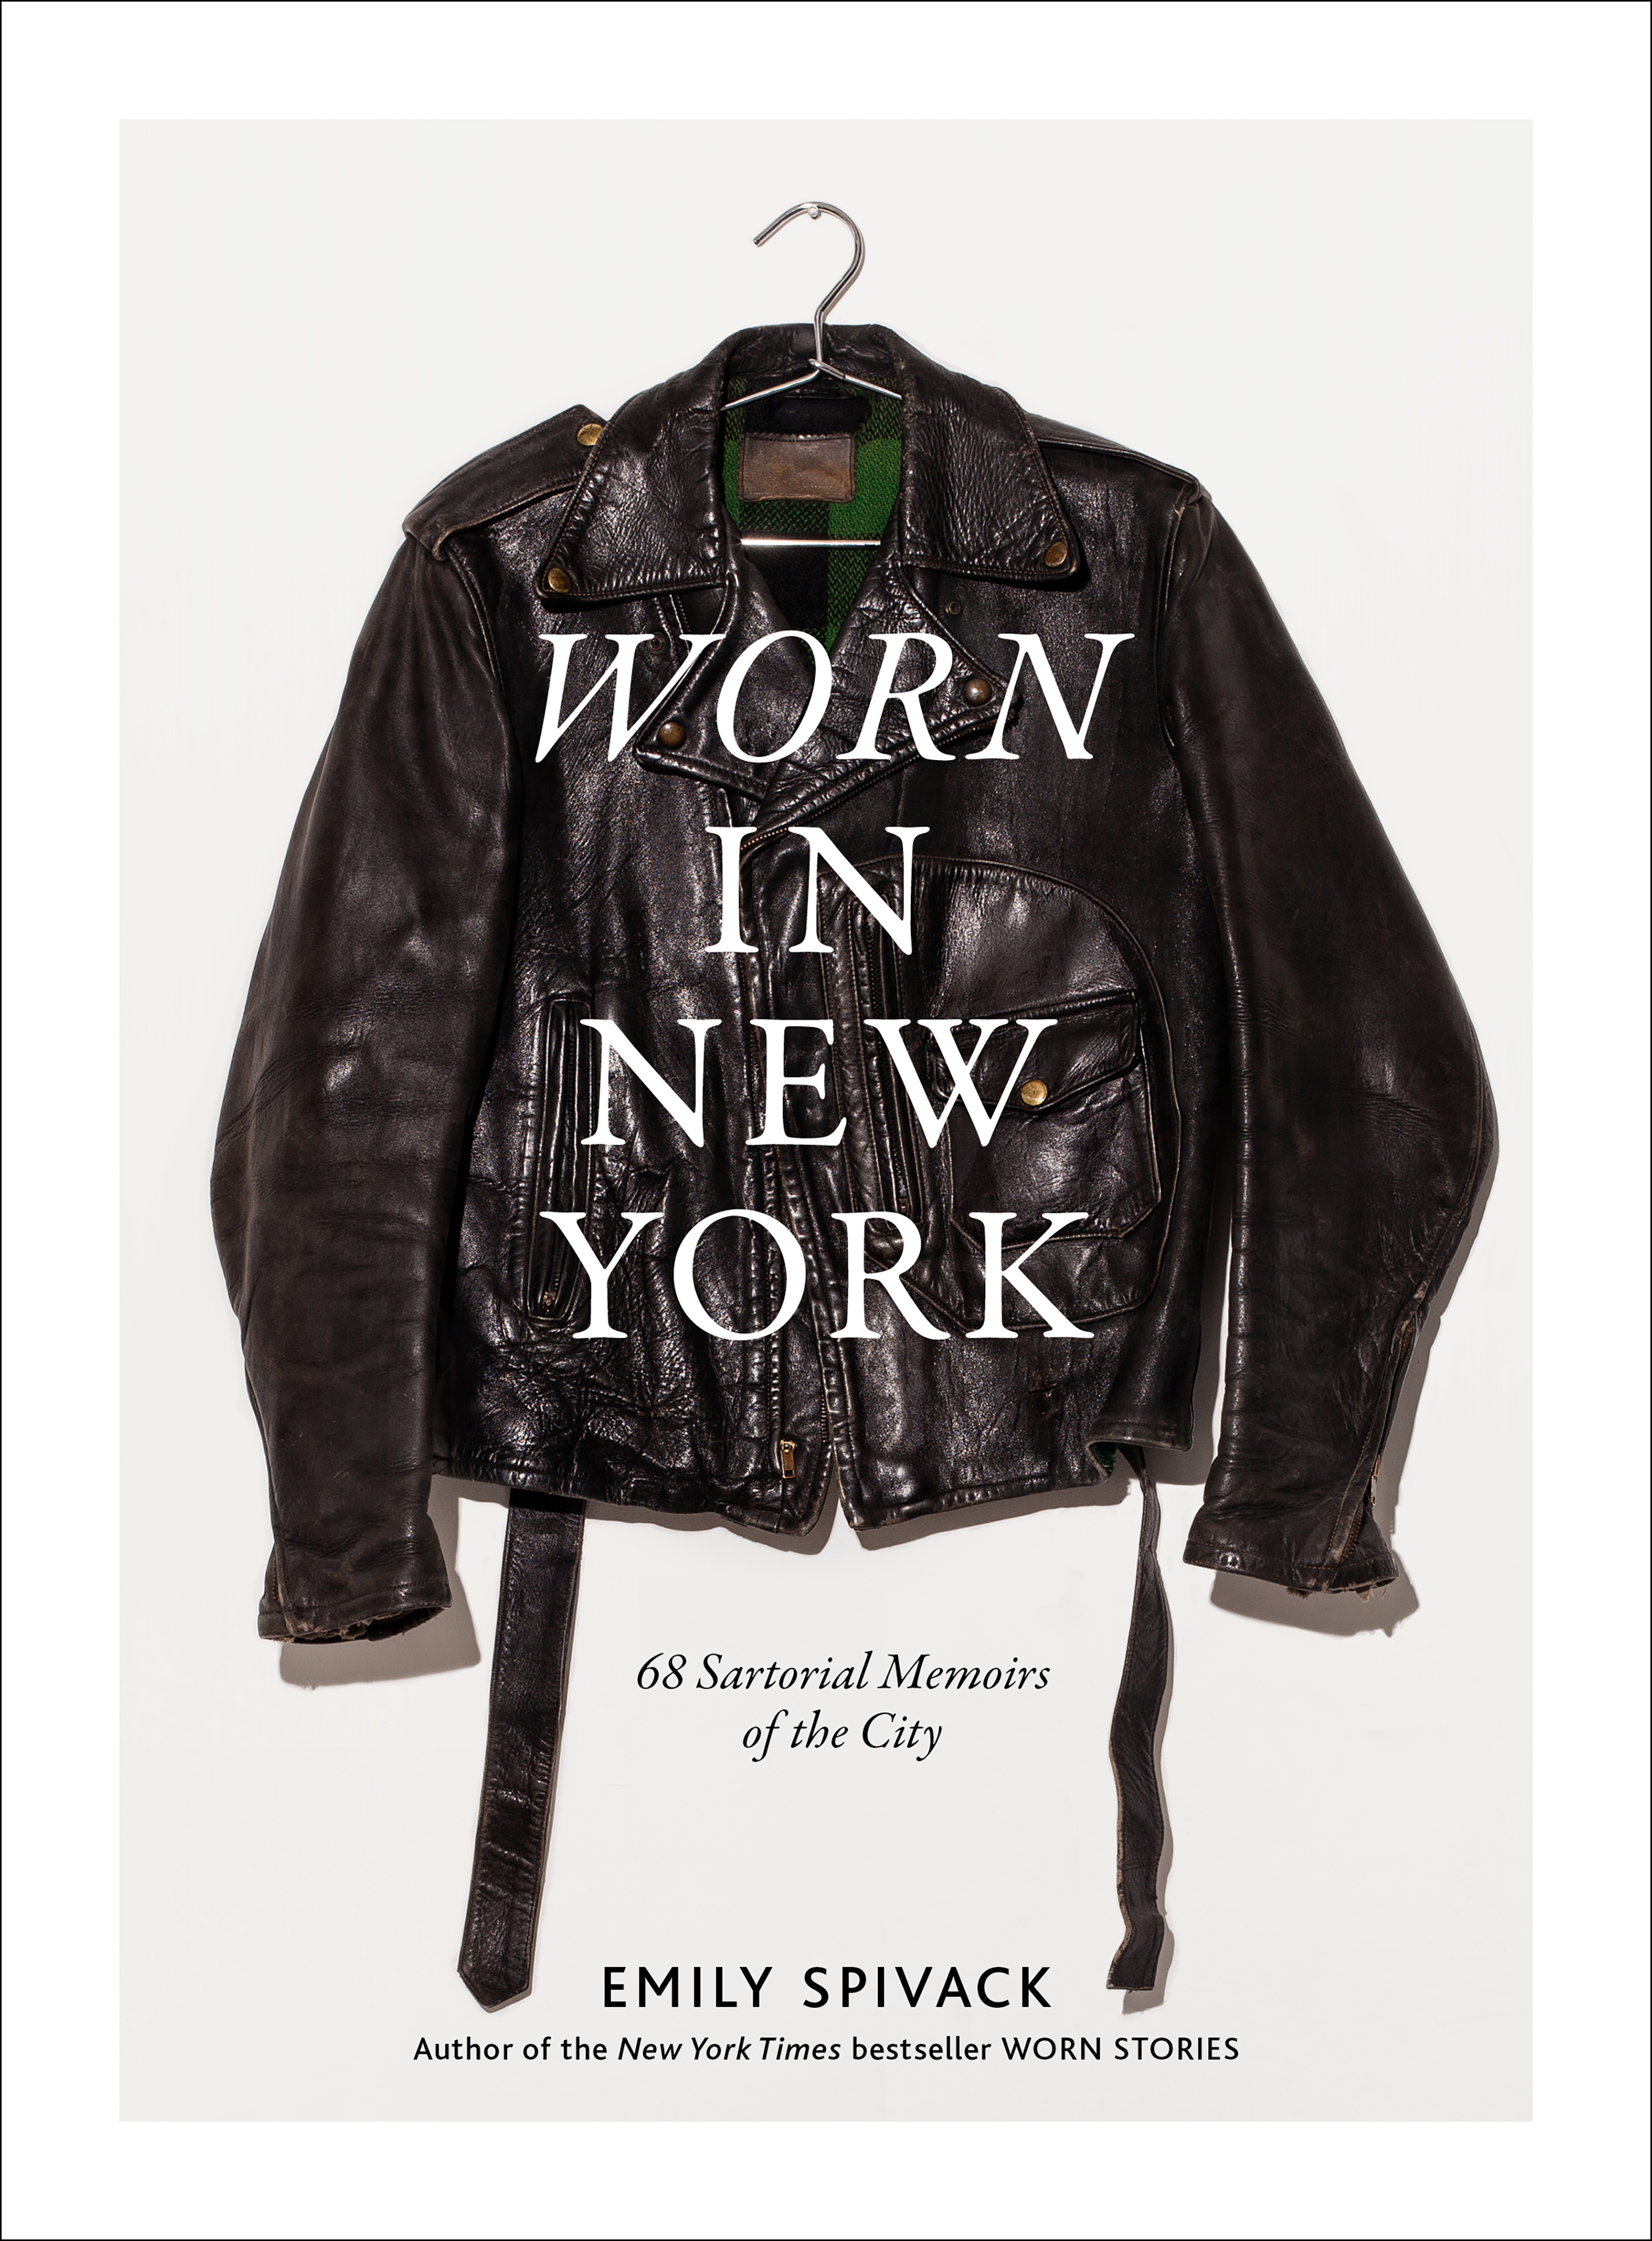 Worn in New York. 68 Sartorial Memoirs of the City confessions of new york taxi driver eugene salomon